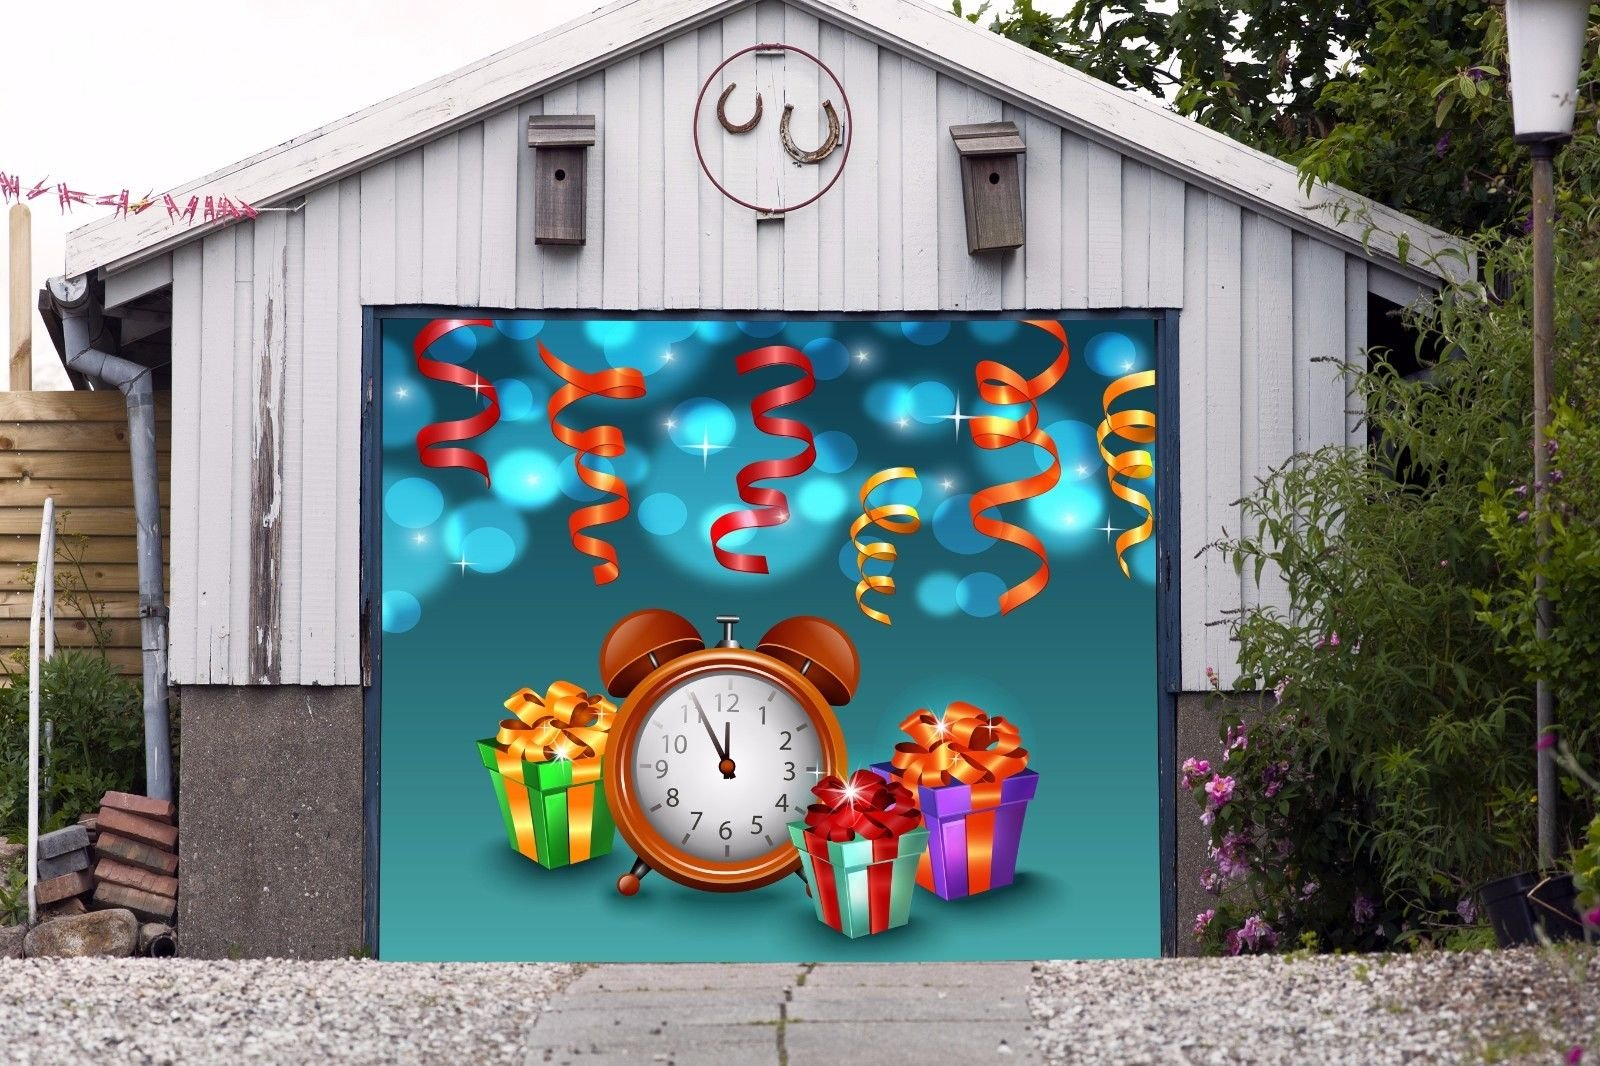 Christmas Clock 3D Effect Print Decor Banner SINGLE CAR GARAGE DOOR MURALS Covers Outdoor Holiday Home Decor Door Cover Billboard Full Color Decorations of House Garage Size 83 x 89 inches DAV78